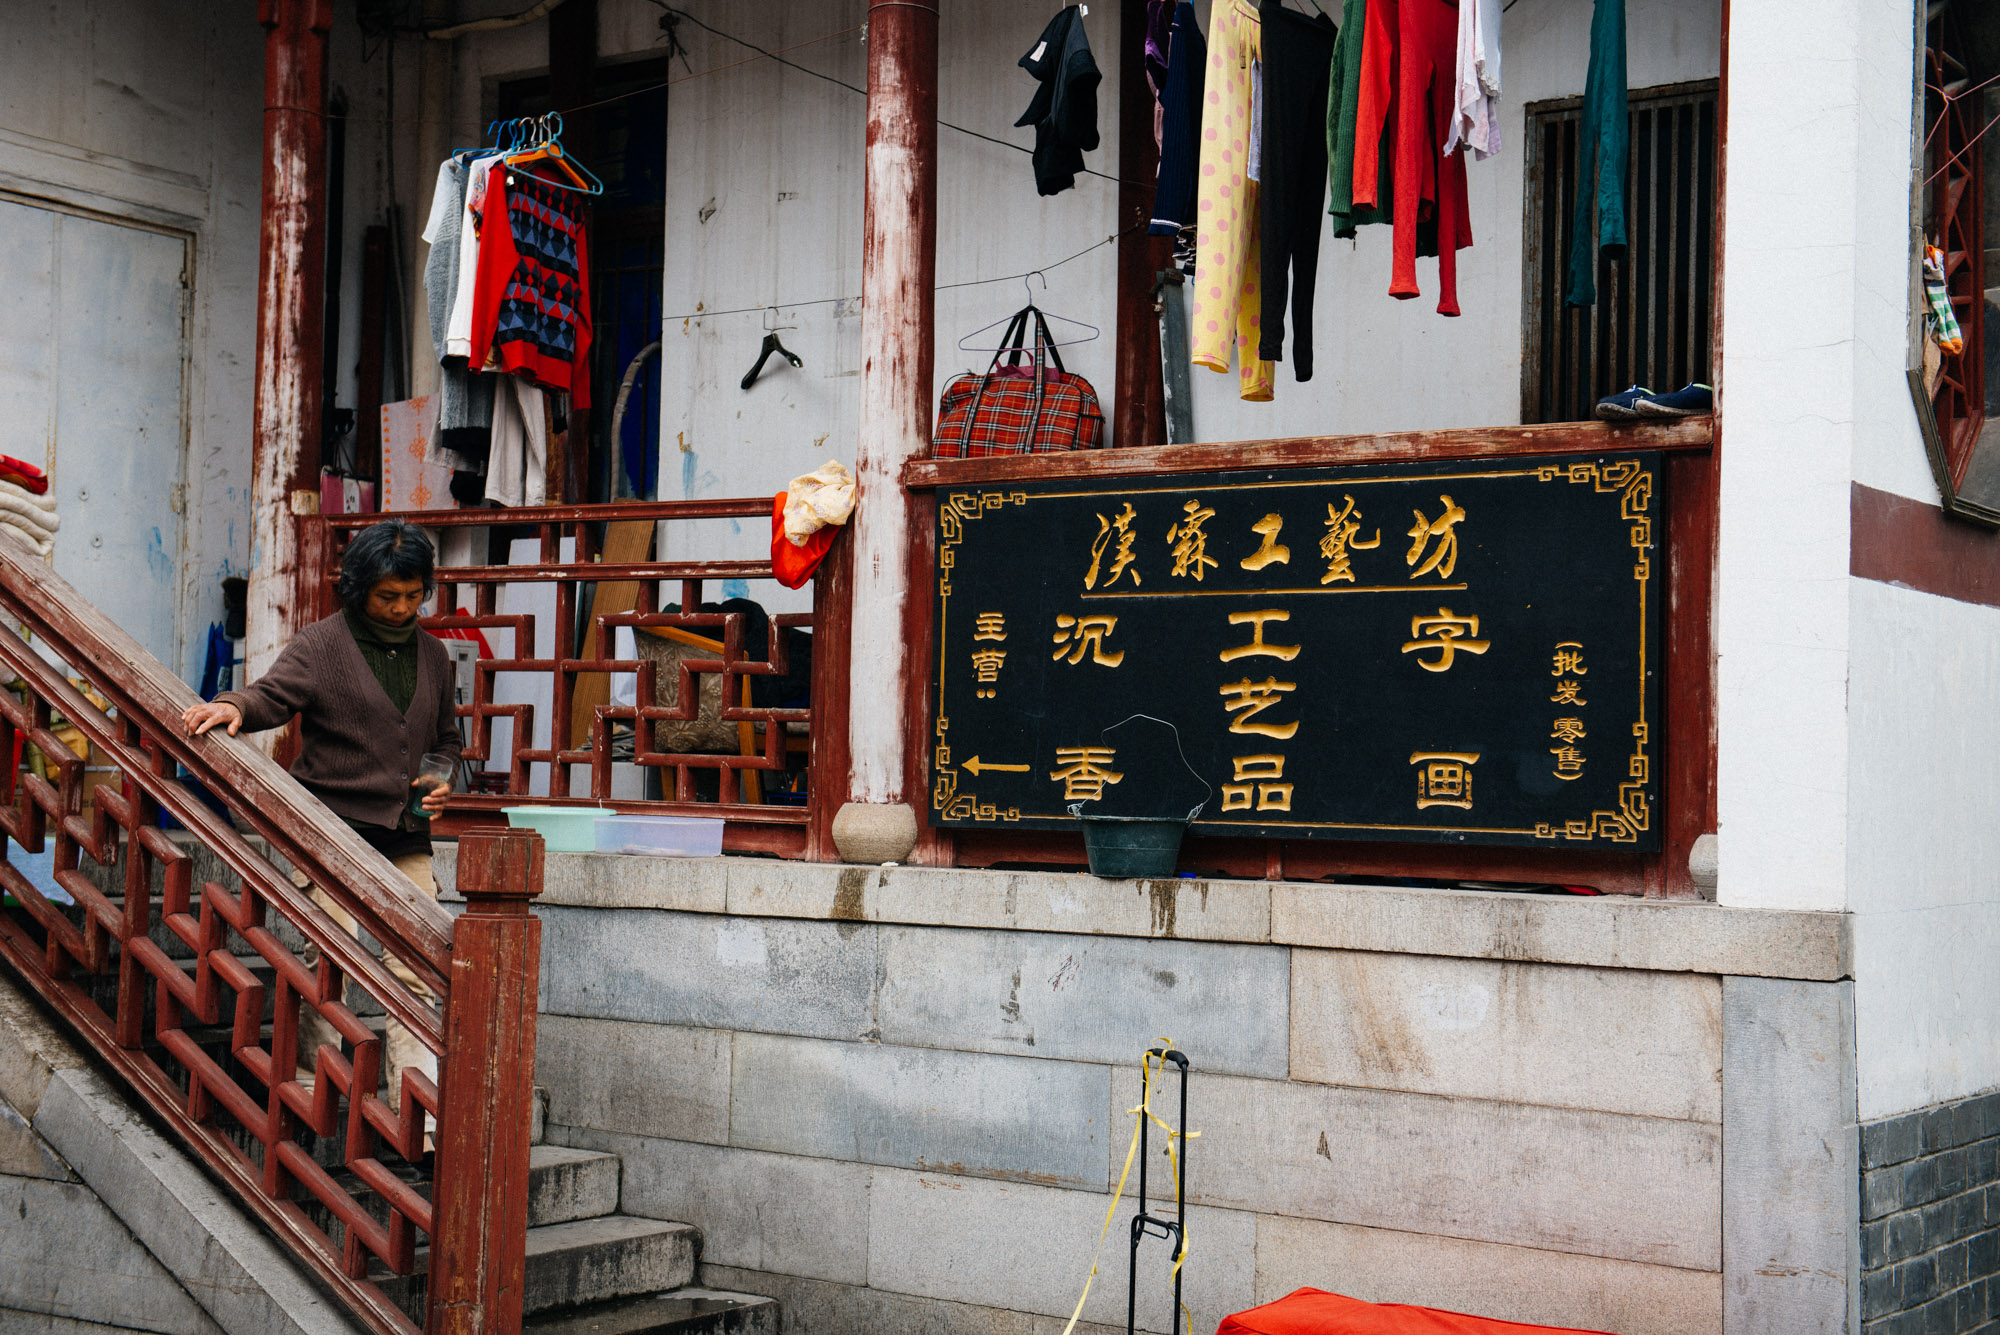 Some people still live in the ancient houses in the town.Qibao is also known to be the place where  Zhang Chongren , the artist who inspired  Chang Chong-Chen , character of the Adventures of Tintin.